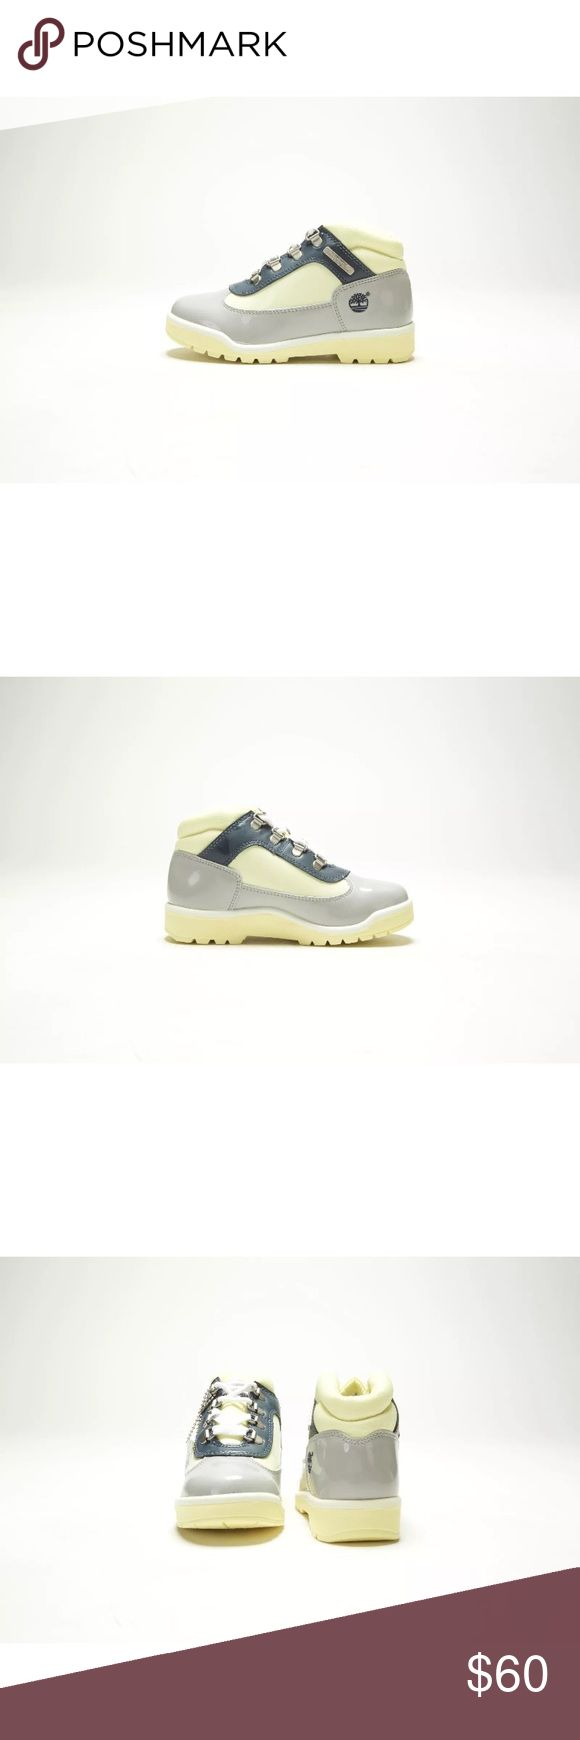 Kids Timberland Boots Short Field Boot 12 13 1 2y FOR SALE:  VINTAGE YOUTH TIMBERLAND FIELD BOOT 40731 PATENT GREY/CREAM-NAVY (MEDIUM)  Size: Youth's 12.5, 13.5, 1.5, 2, 2.5 Width: Medium Color:  Patent Grey/Cream-Navy This is unworn and authentic. I SELL IN STORE TOO. If you want something DONT WAIT. Timberland Shoes Boots